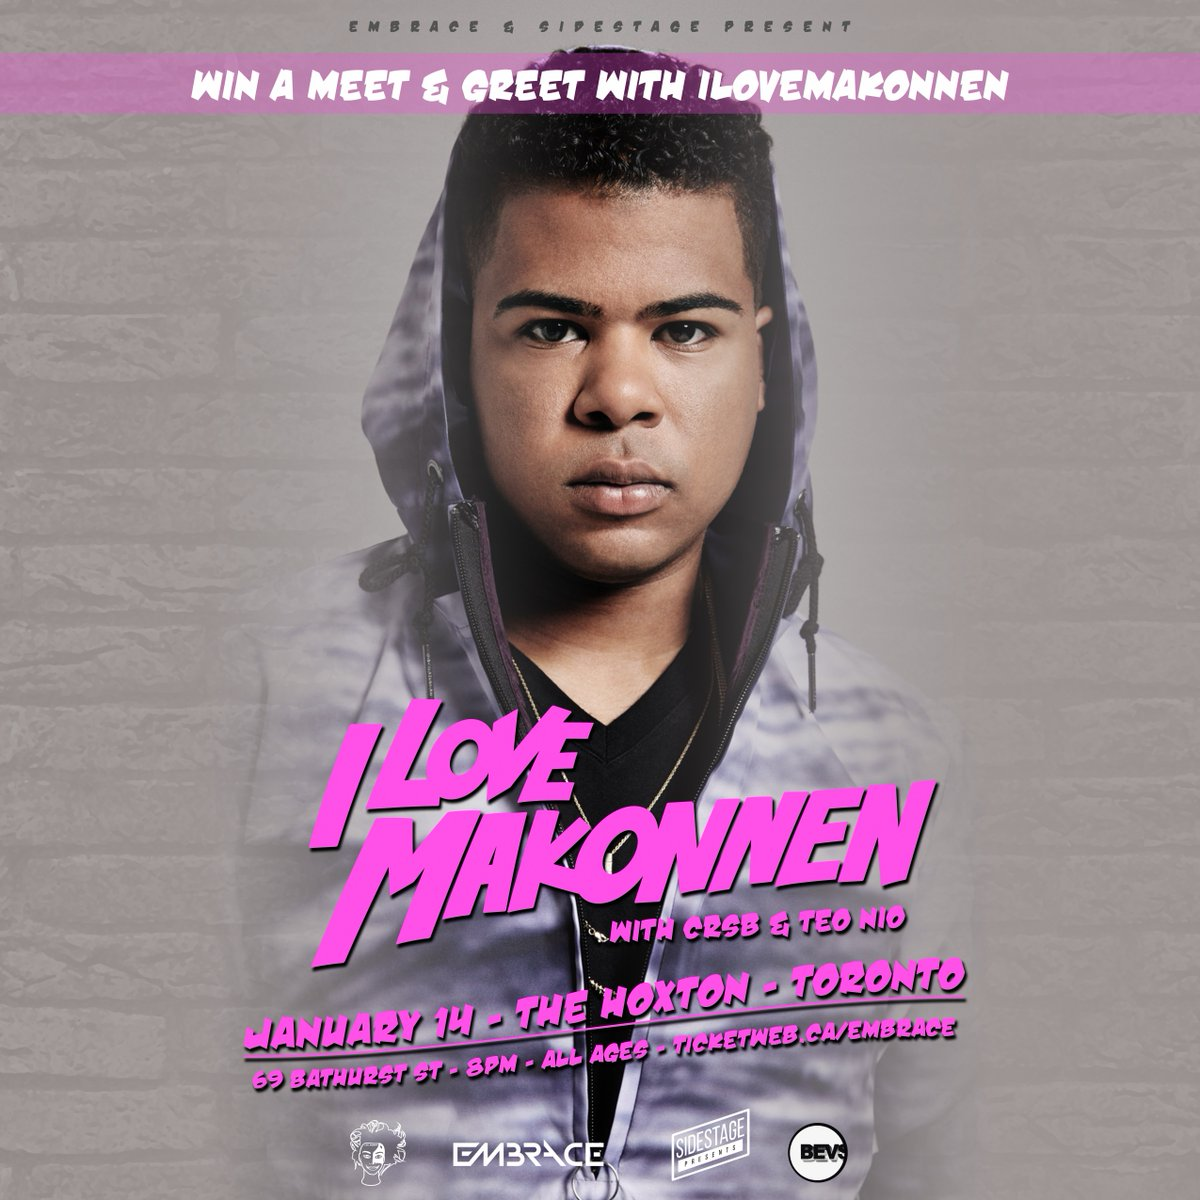 CONTEST! Win a pair of tix and MEET & GREET with @iLoveMakonnen5D tomorrow at @the_hoxton! Retweet to be entered! https://t.co/D0IEcLaTXY